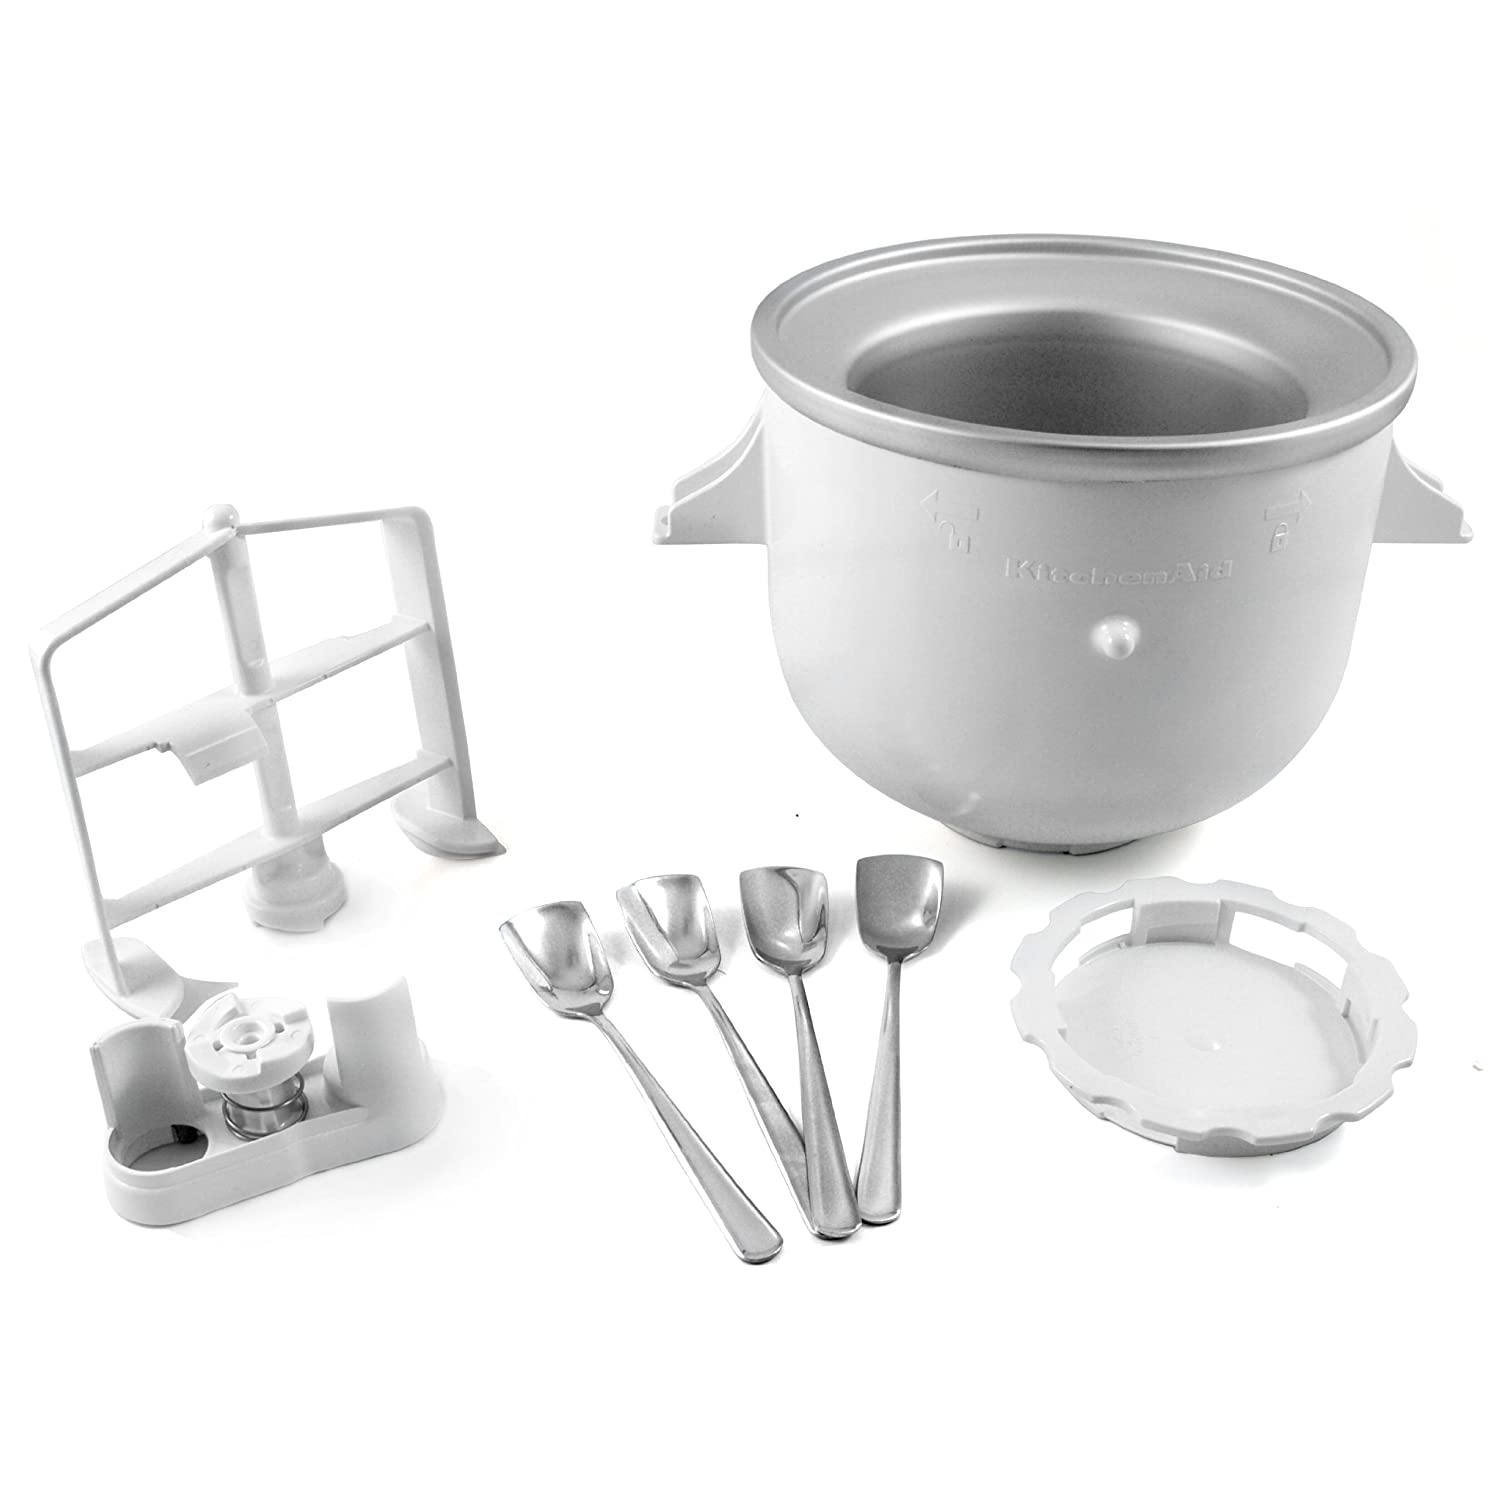 KitchenAid KICA0WH Ice Cream Maker Attachment for Stand Mixer with Set of 4 Free Ice Cream Spoons